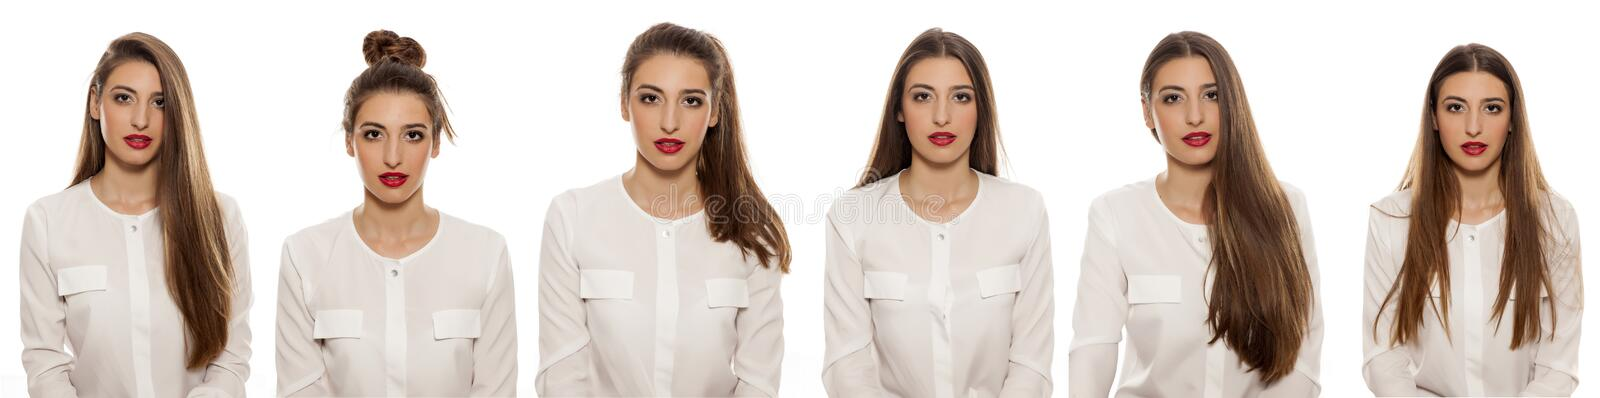 Six portraits - one woman. Six portraits of the same girl with different hair styles royalty free stock photography